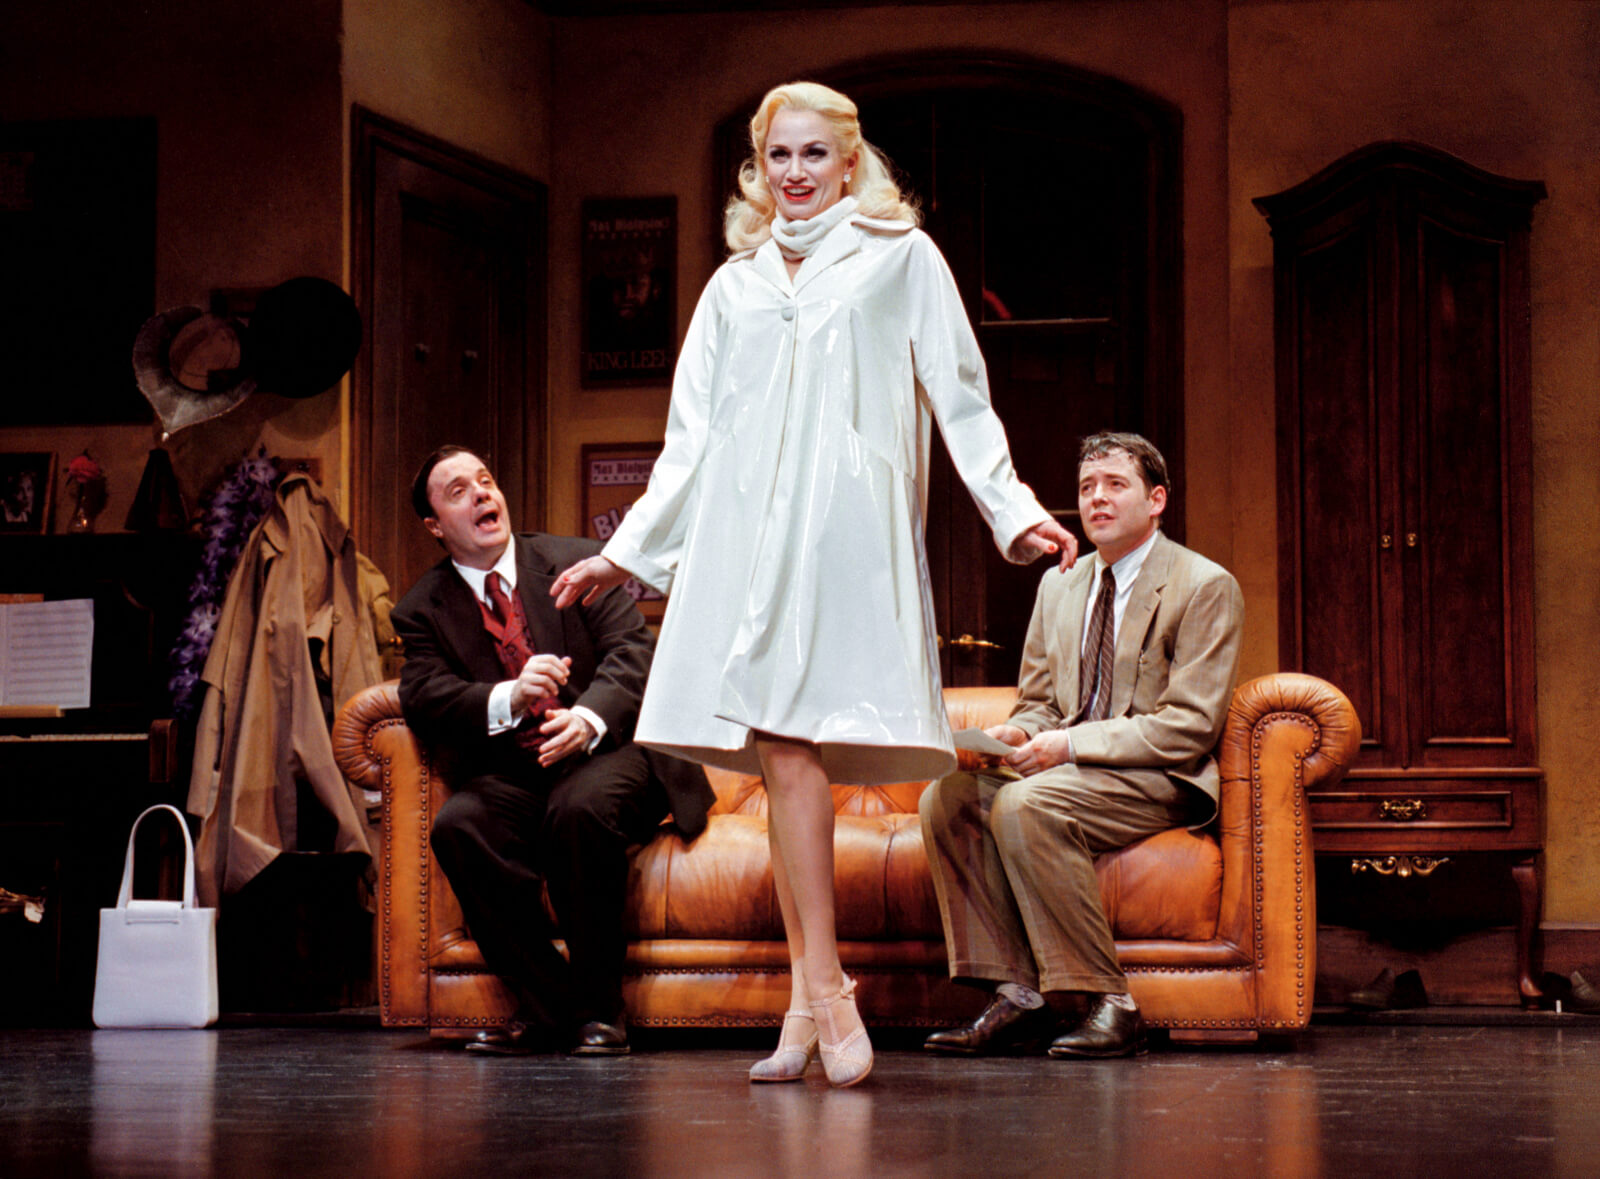 """Max Bialystock (Nathan Lane) and Leo Bloom (Matthew Broderick) watch Ulla (Cady Huffman) sing """"When You Got It, Flaunt It""""."""